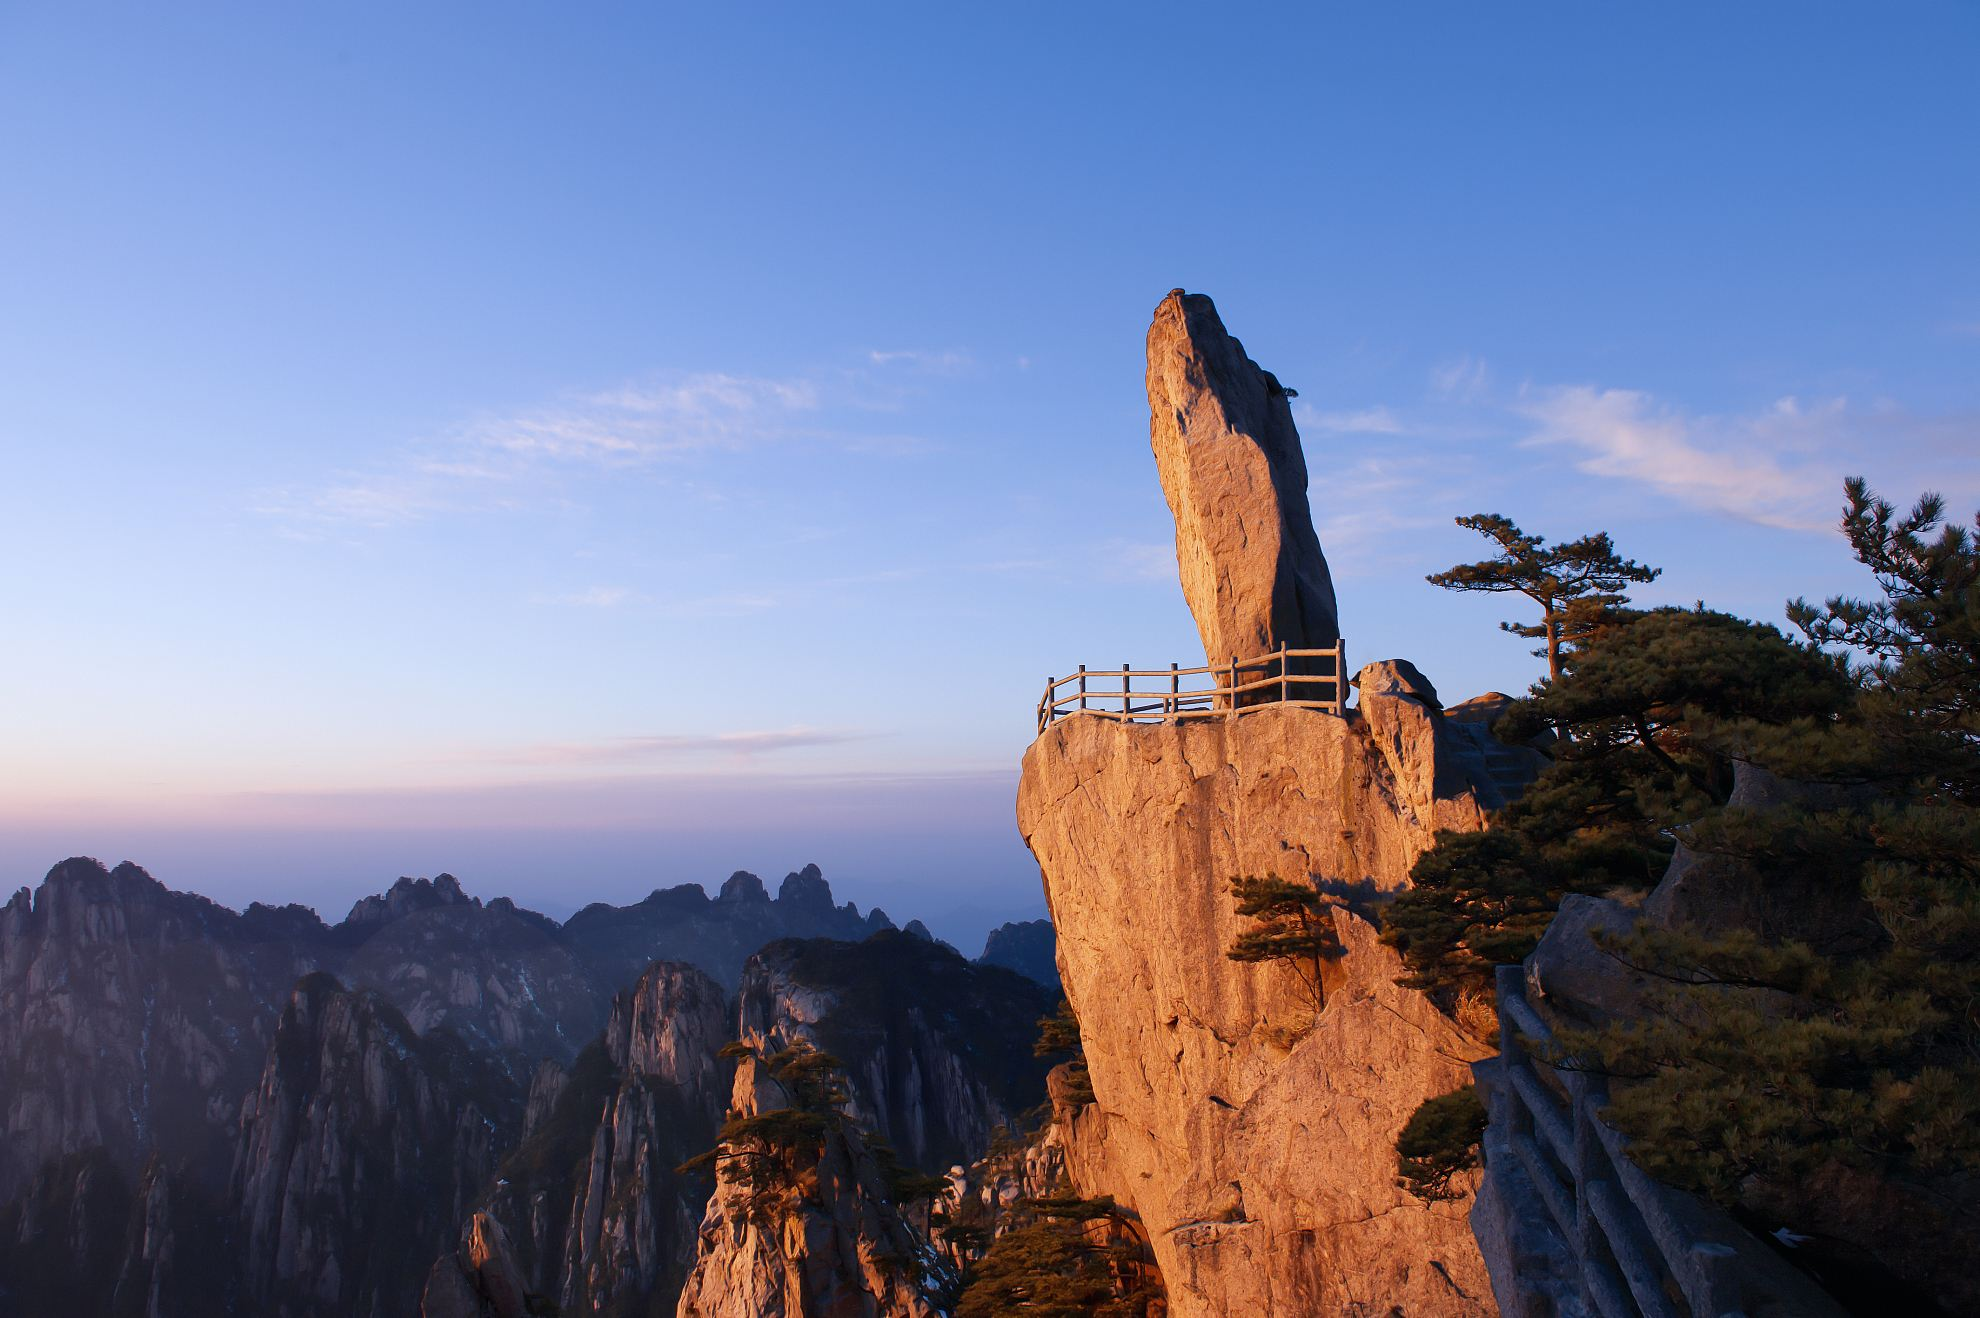 3-Day_Beijing_Huangshan_Sightseeing_Tour_with_Round-trip_High-speed_Train_8.jpg